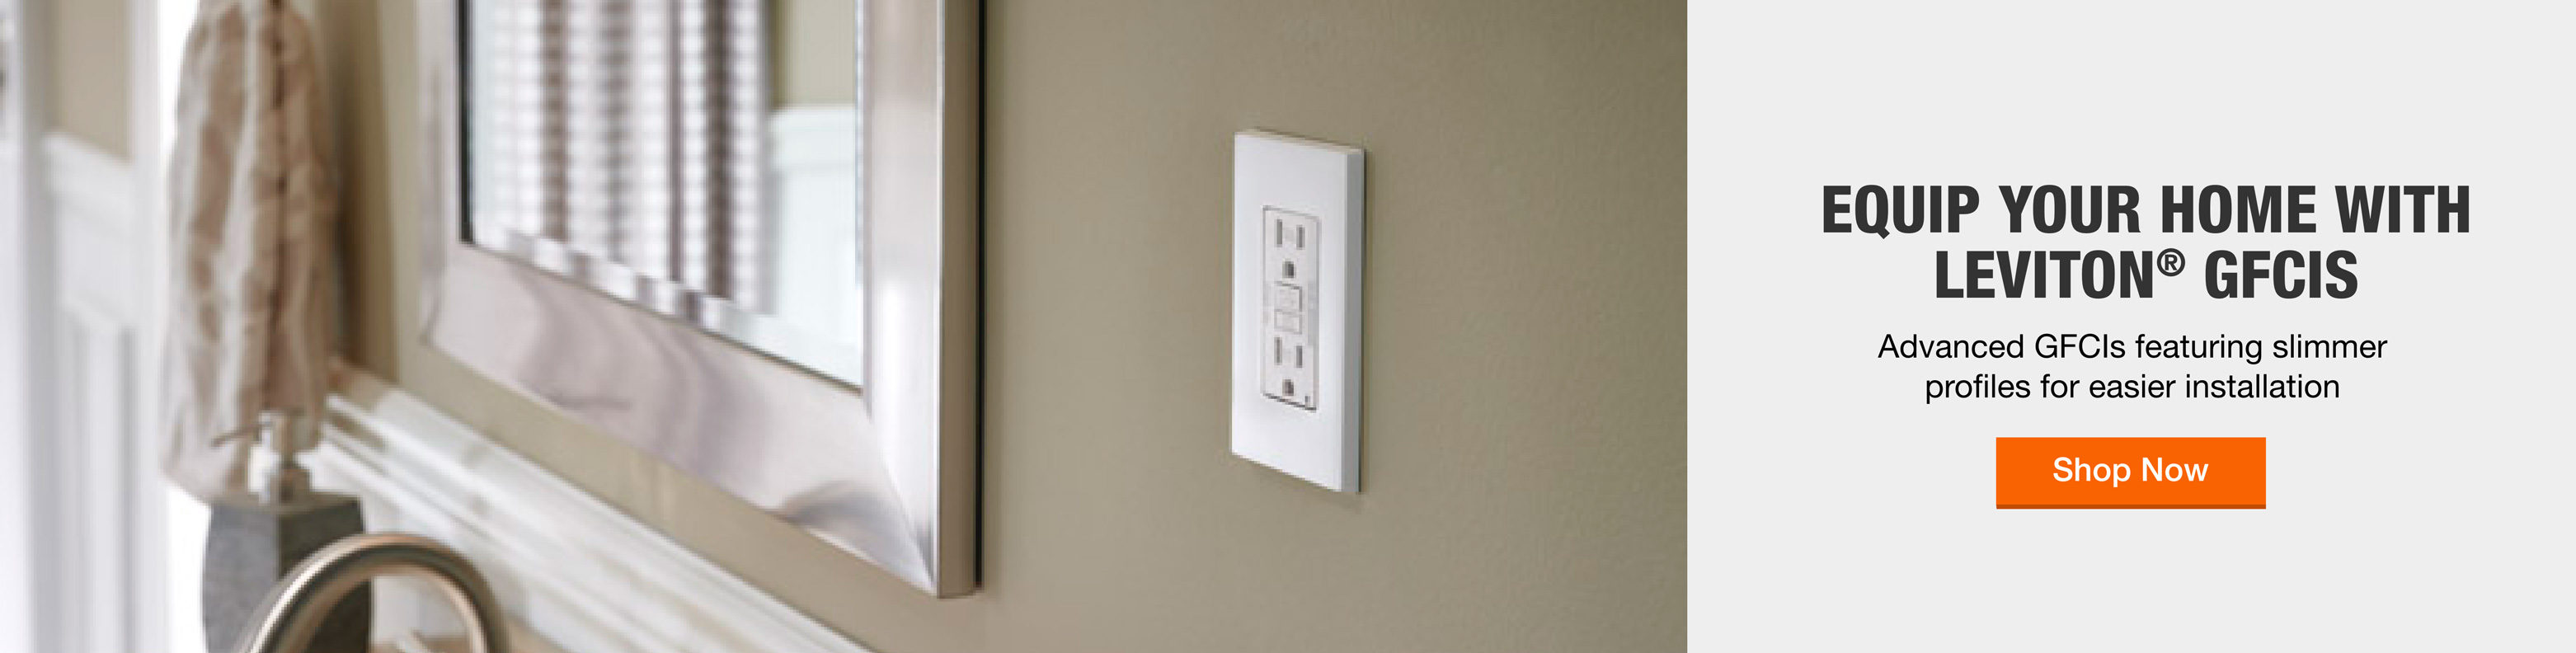 Wiring Devices And Light Controls For Your Home The Home Depot